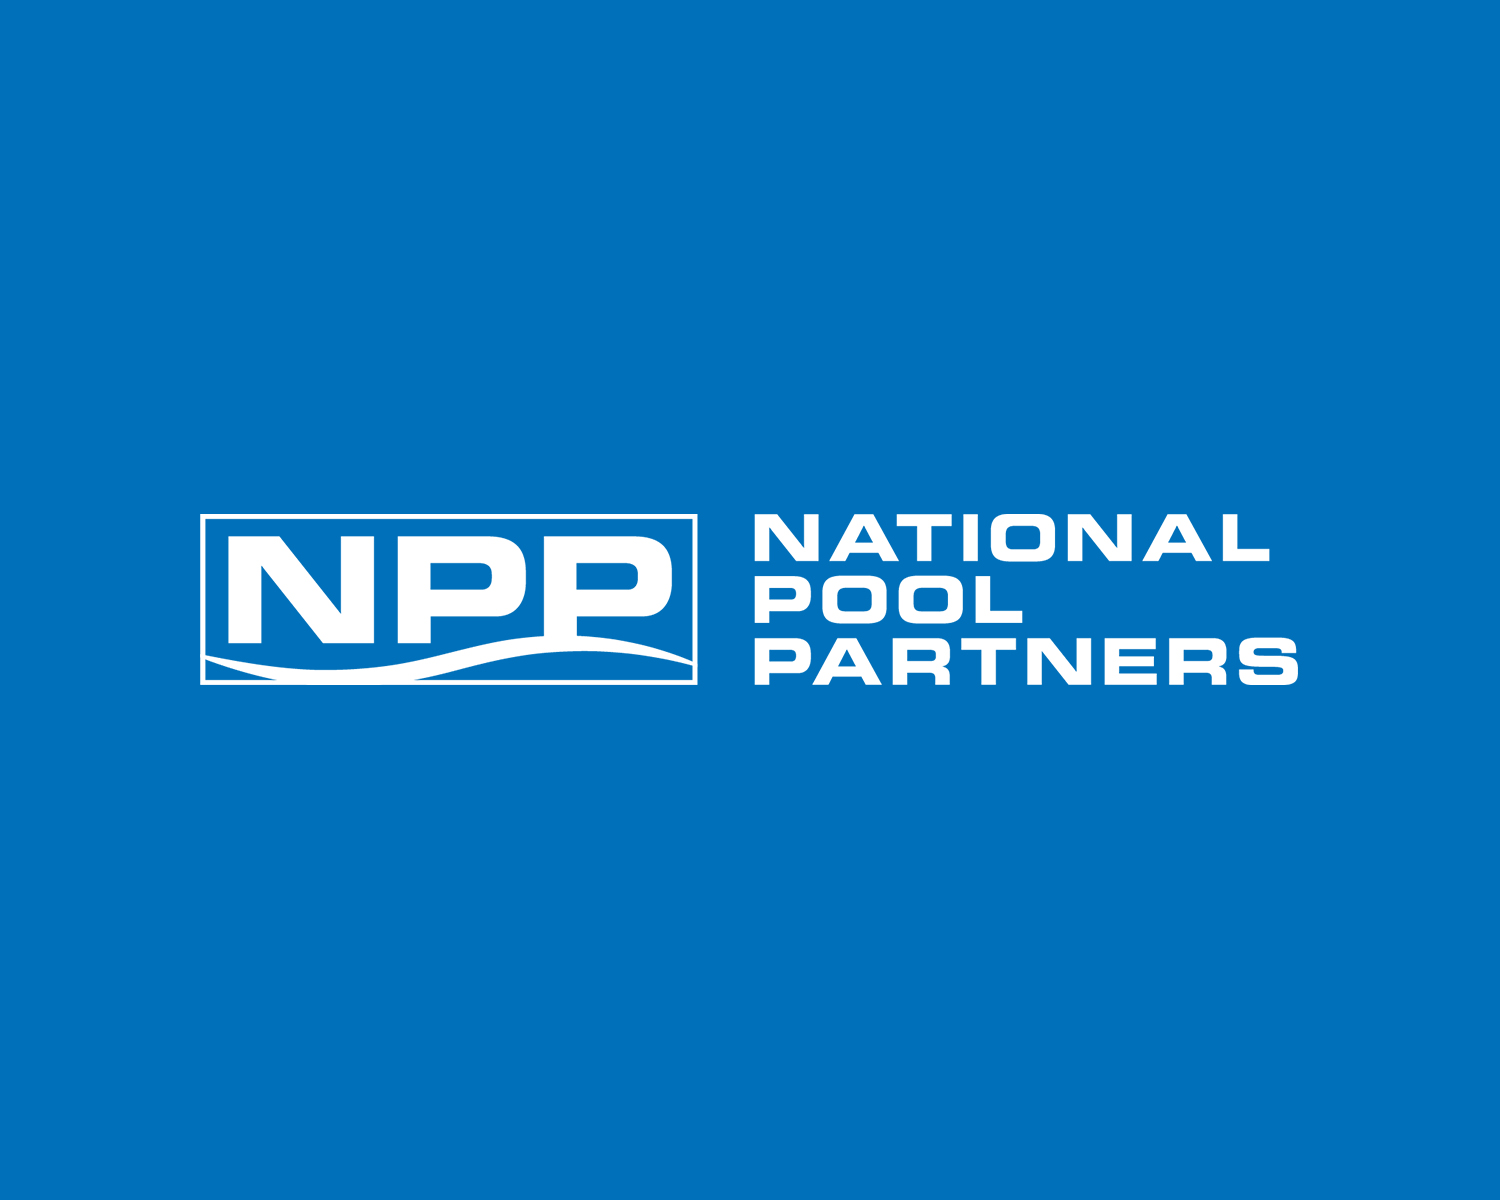 National Pool Partners Grows Its World Class Mergers And Acquisitions Development Team